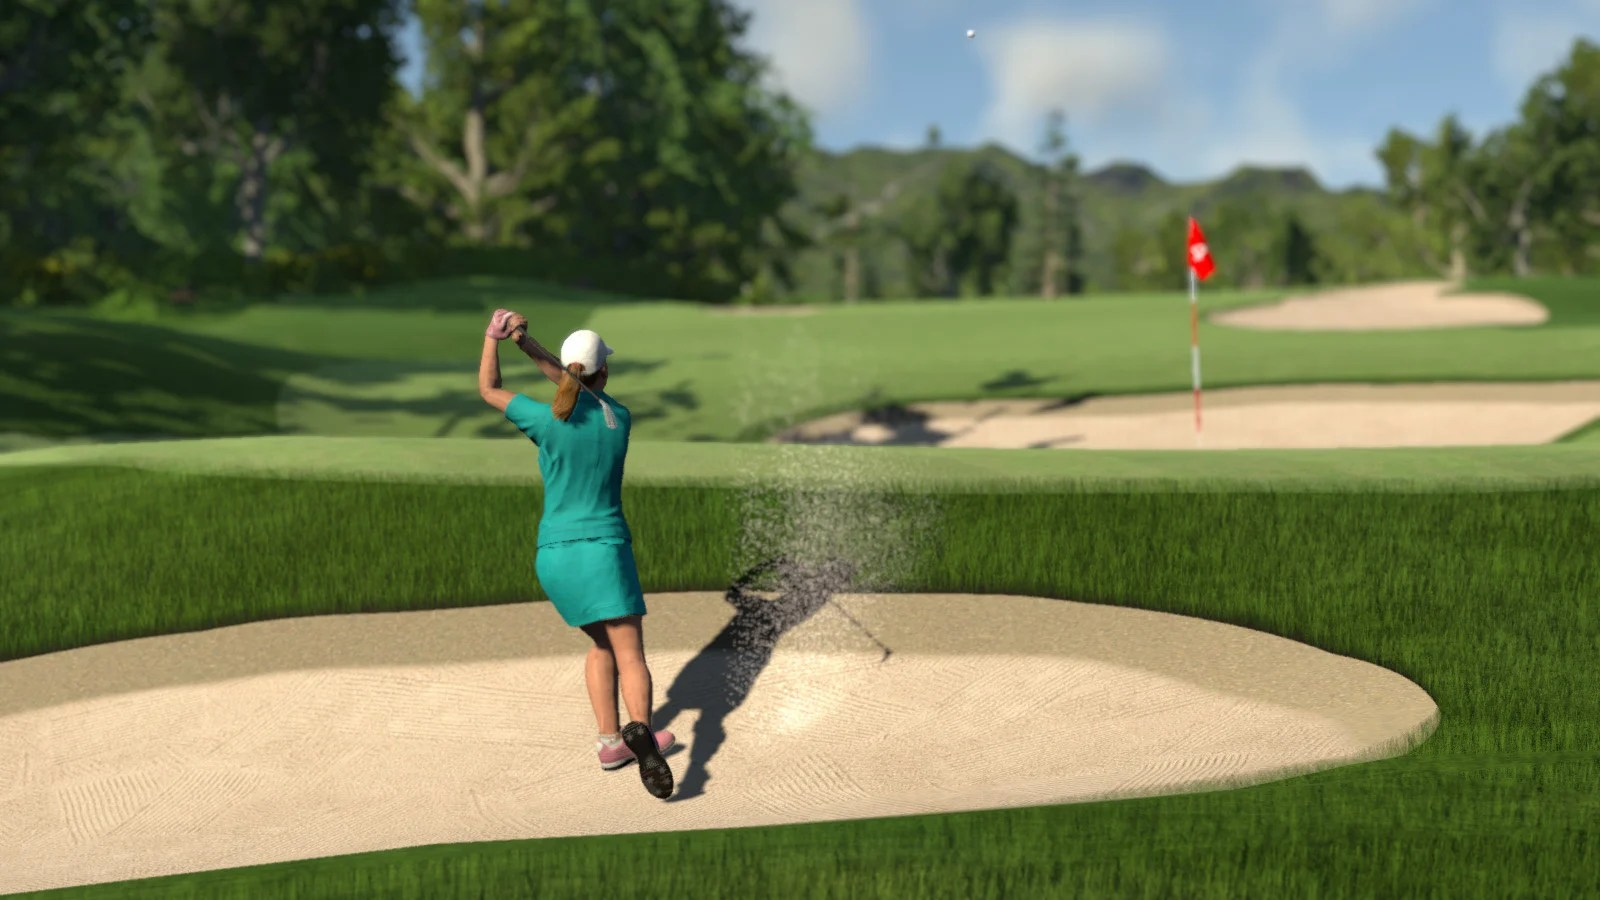 The Golf Club PS4  PlayStation 4 News Reviews Trailer